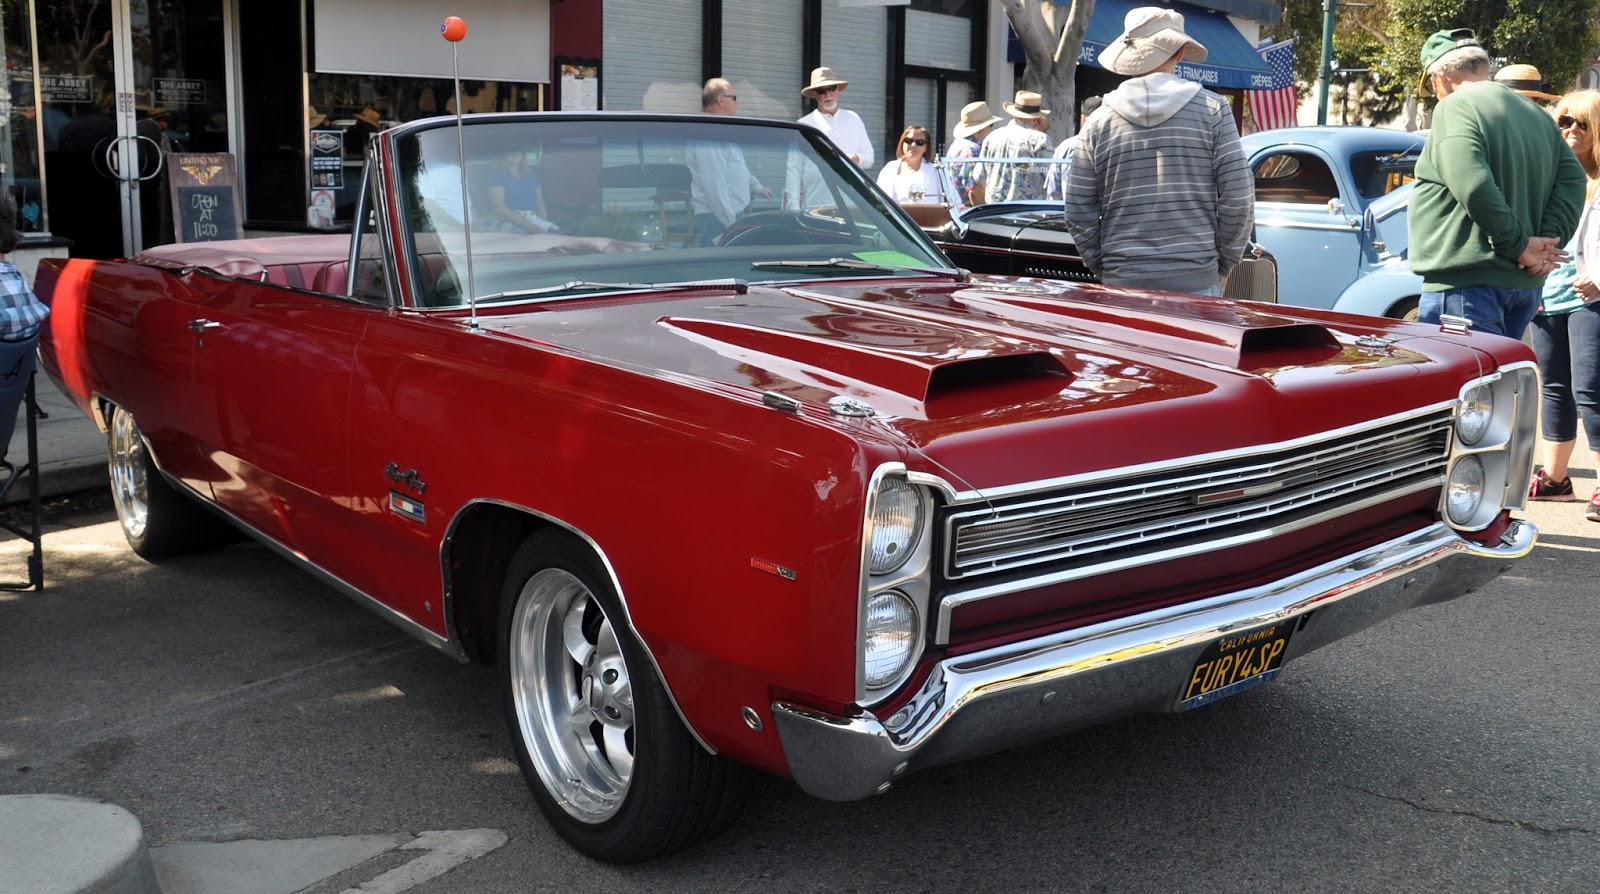 Just A Car Guy: a 1968 Plymouth Sport Fury  The hood scoops